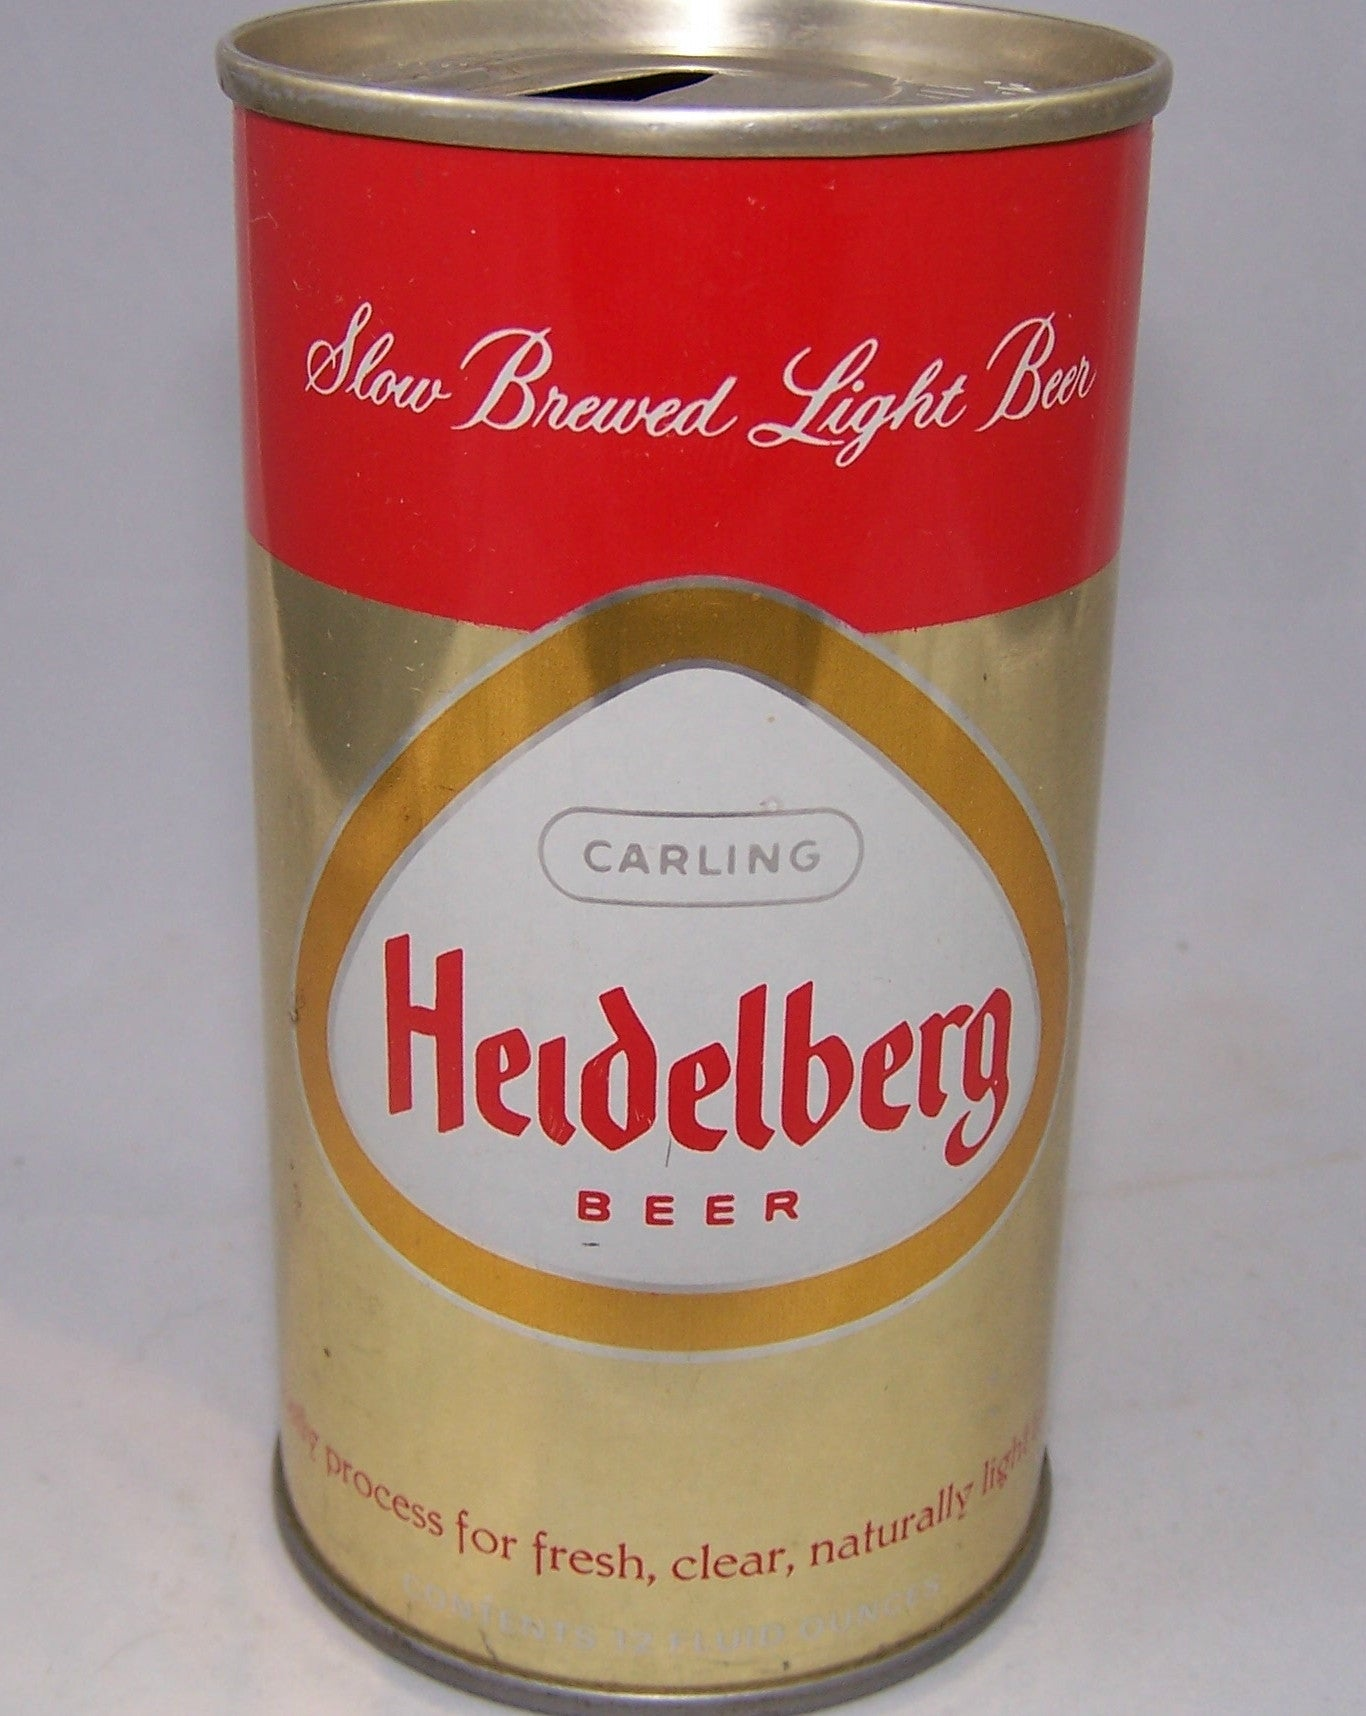 Carling Heidelberg Beer, Metallic,  USBC N.L Like 75-11, Grade 1/1+ Sold